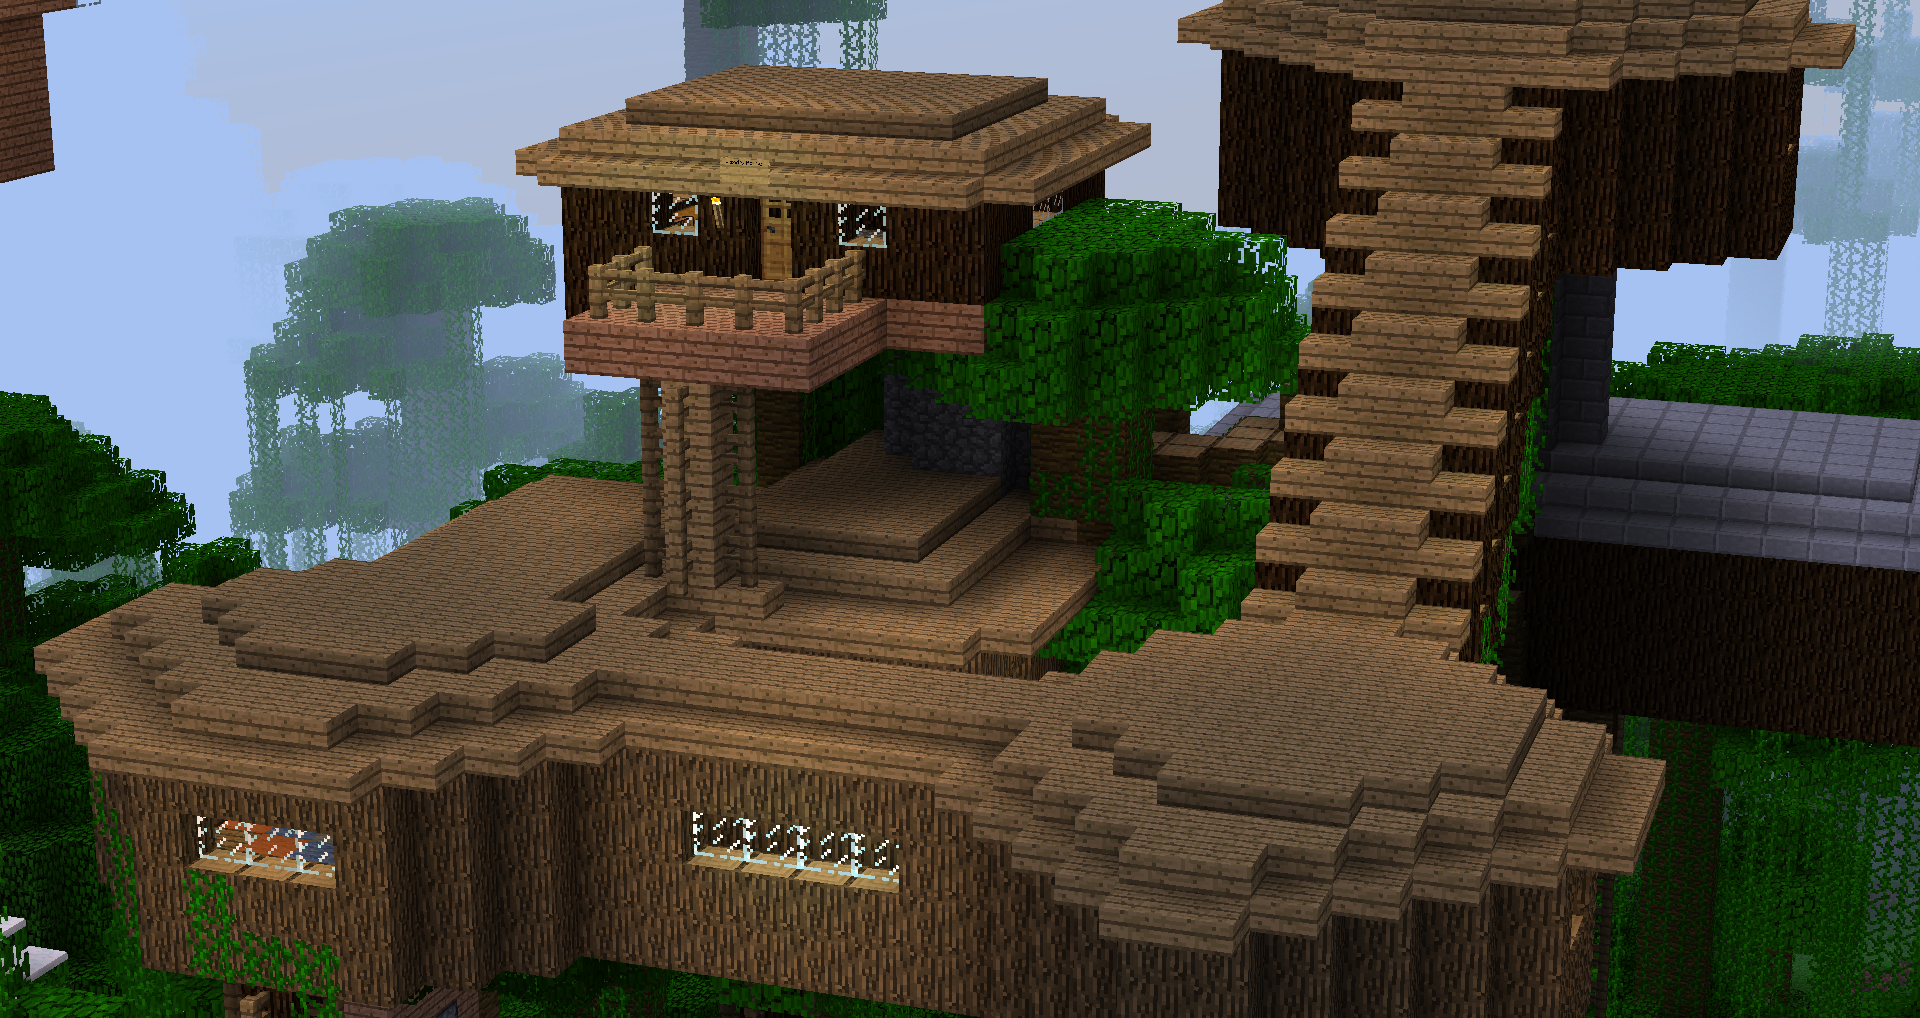 minecraft treehouse - Google Search | mincraft | Pinterest ...